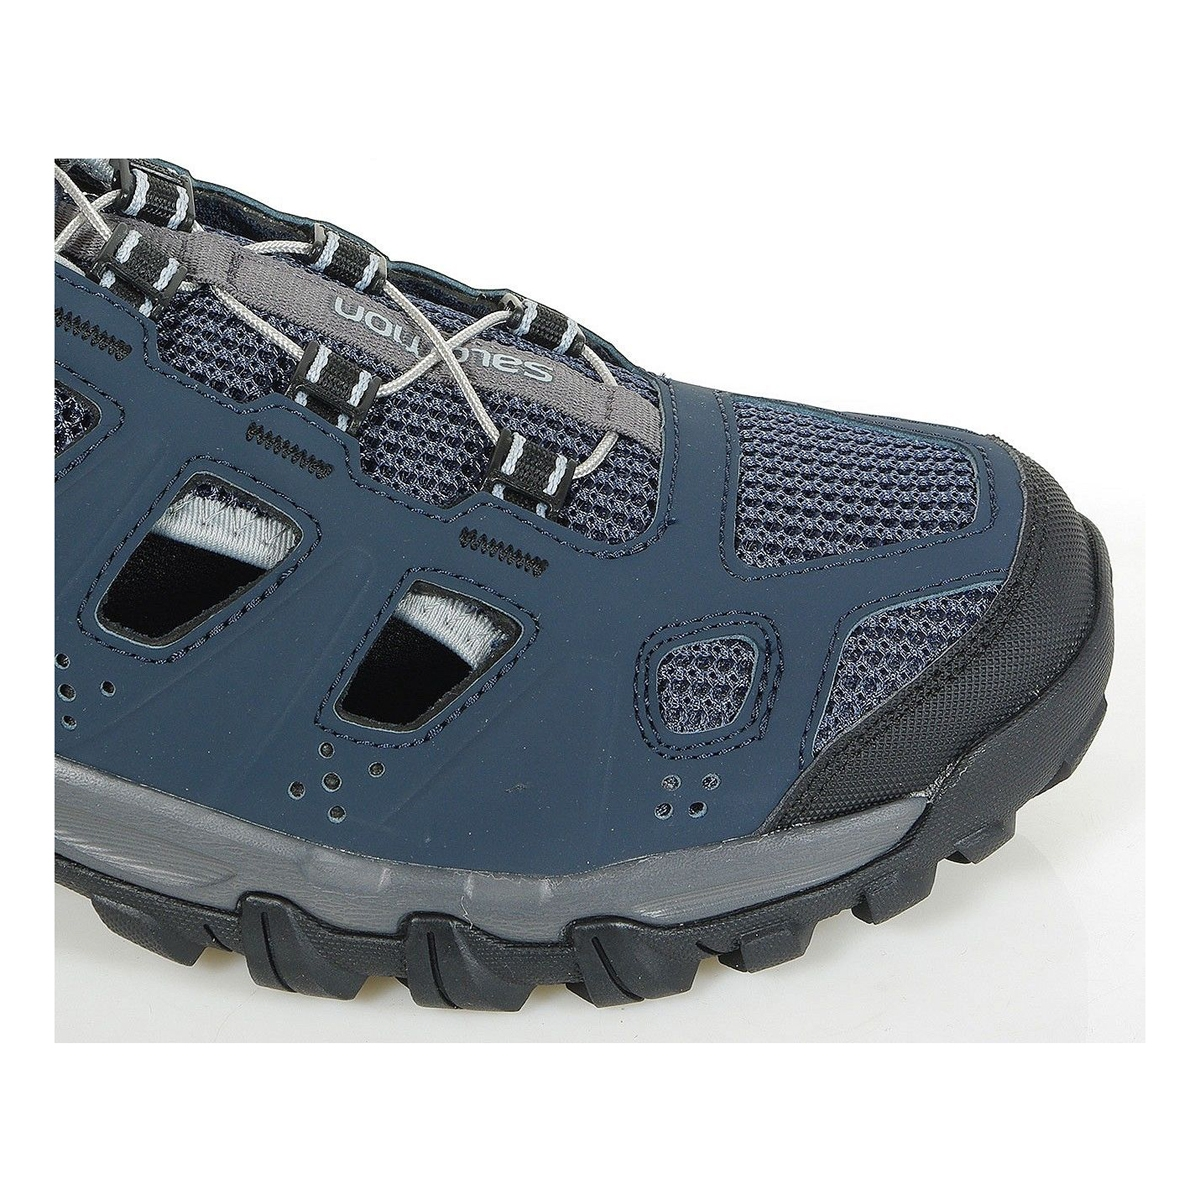 Cabrio Onyx Bluedark Salomon Cloudlight Shoesmen'sDeep Evasion 54LARj3